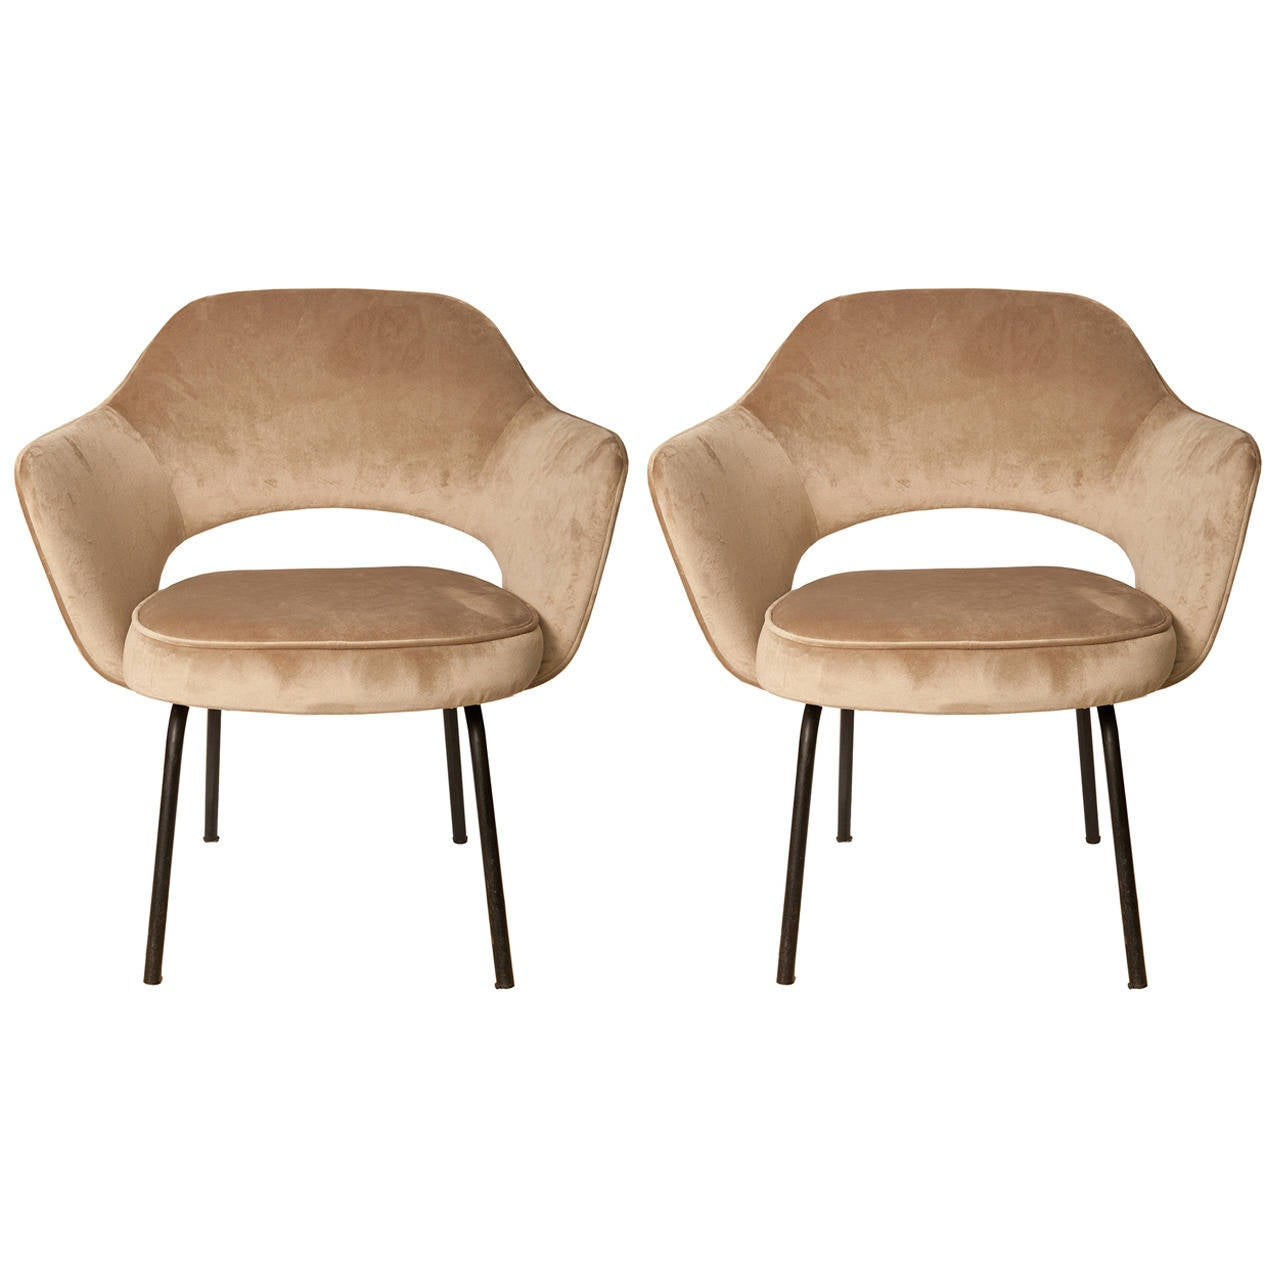 Mid-Century Danish Modern Style Chairs At 1stdibs